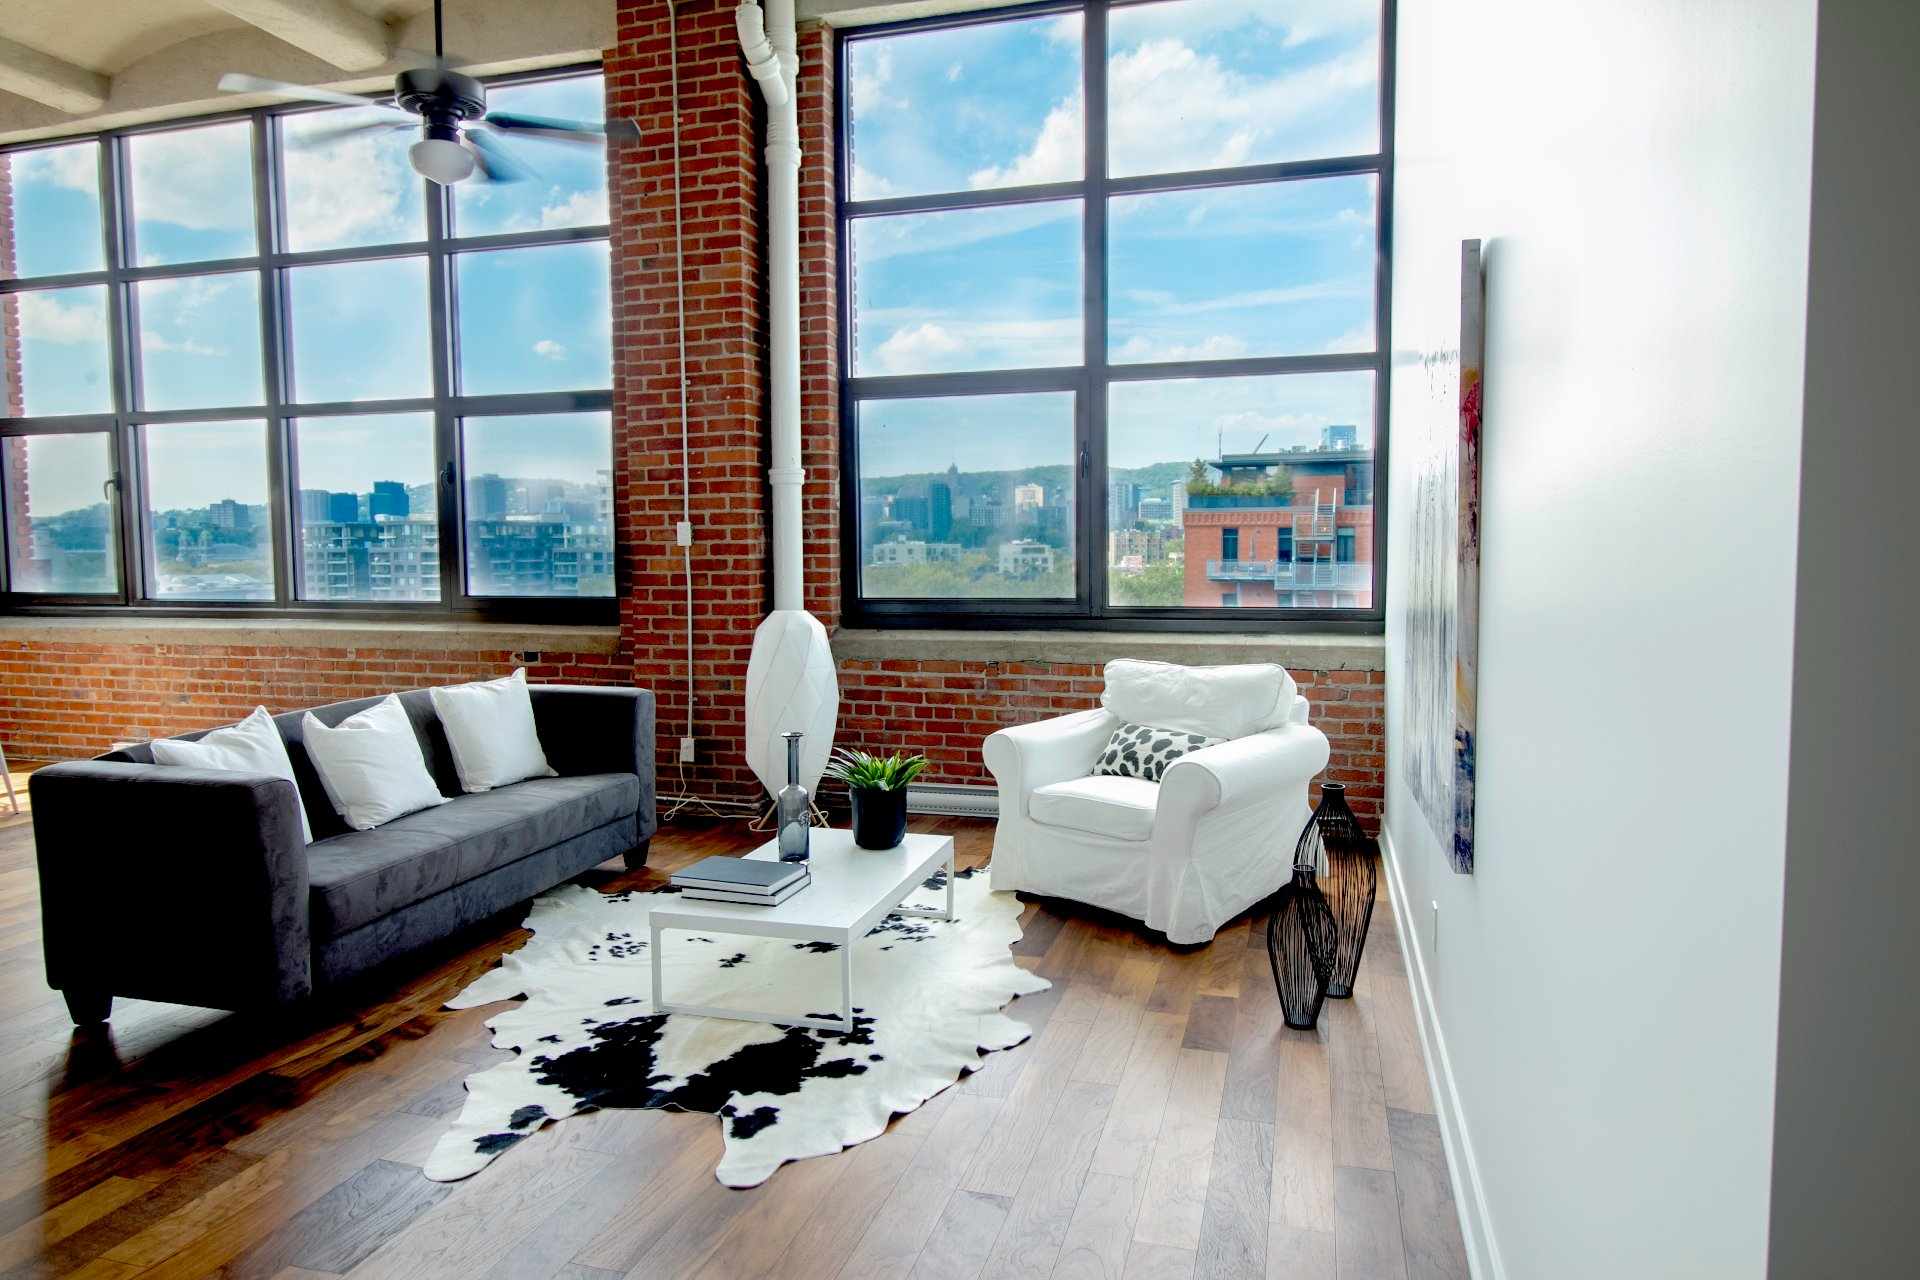 Luxury Condo for sale Pointe-Saint-Charles Montreal ($830,292)